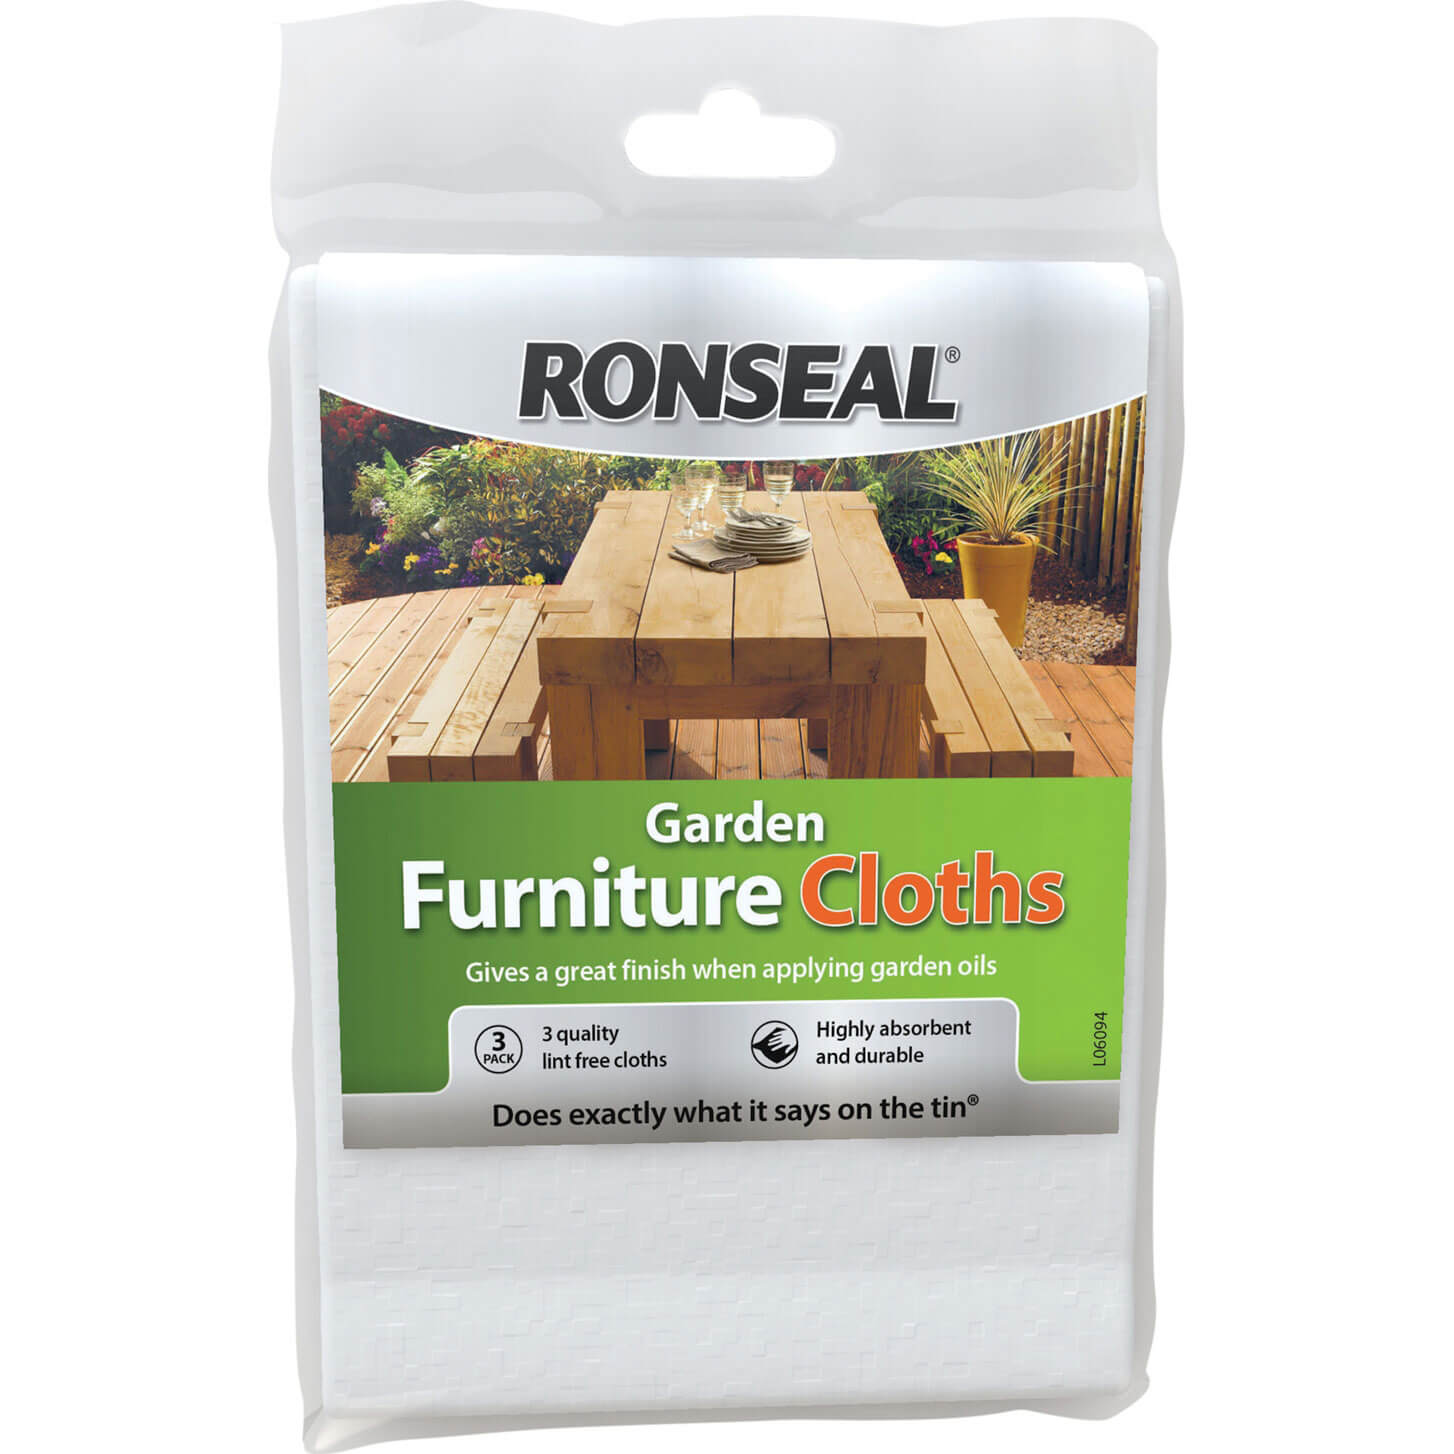 Image of Ronseal Garden Furniture Cloth Pack of 3